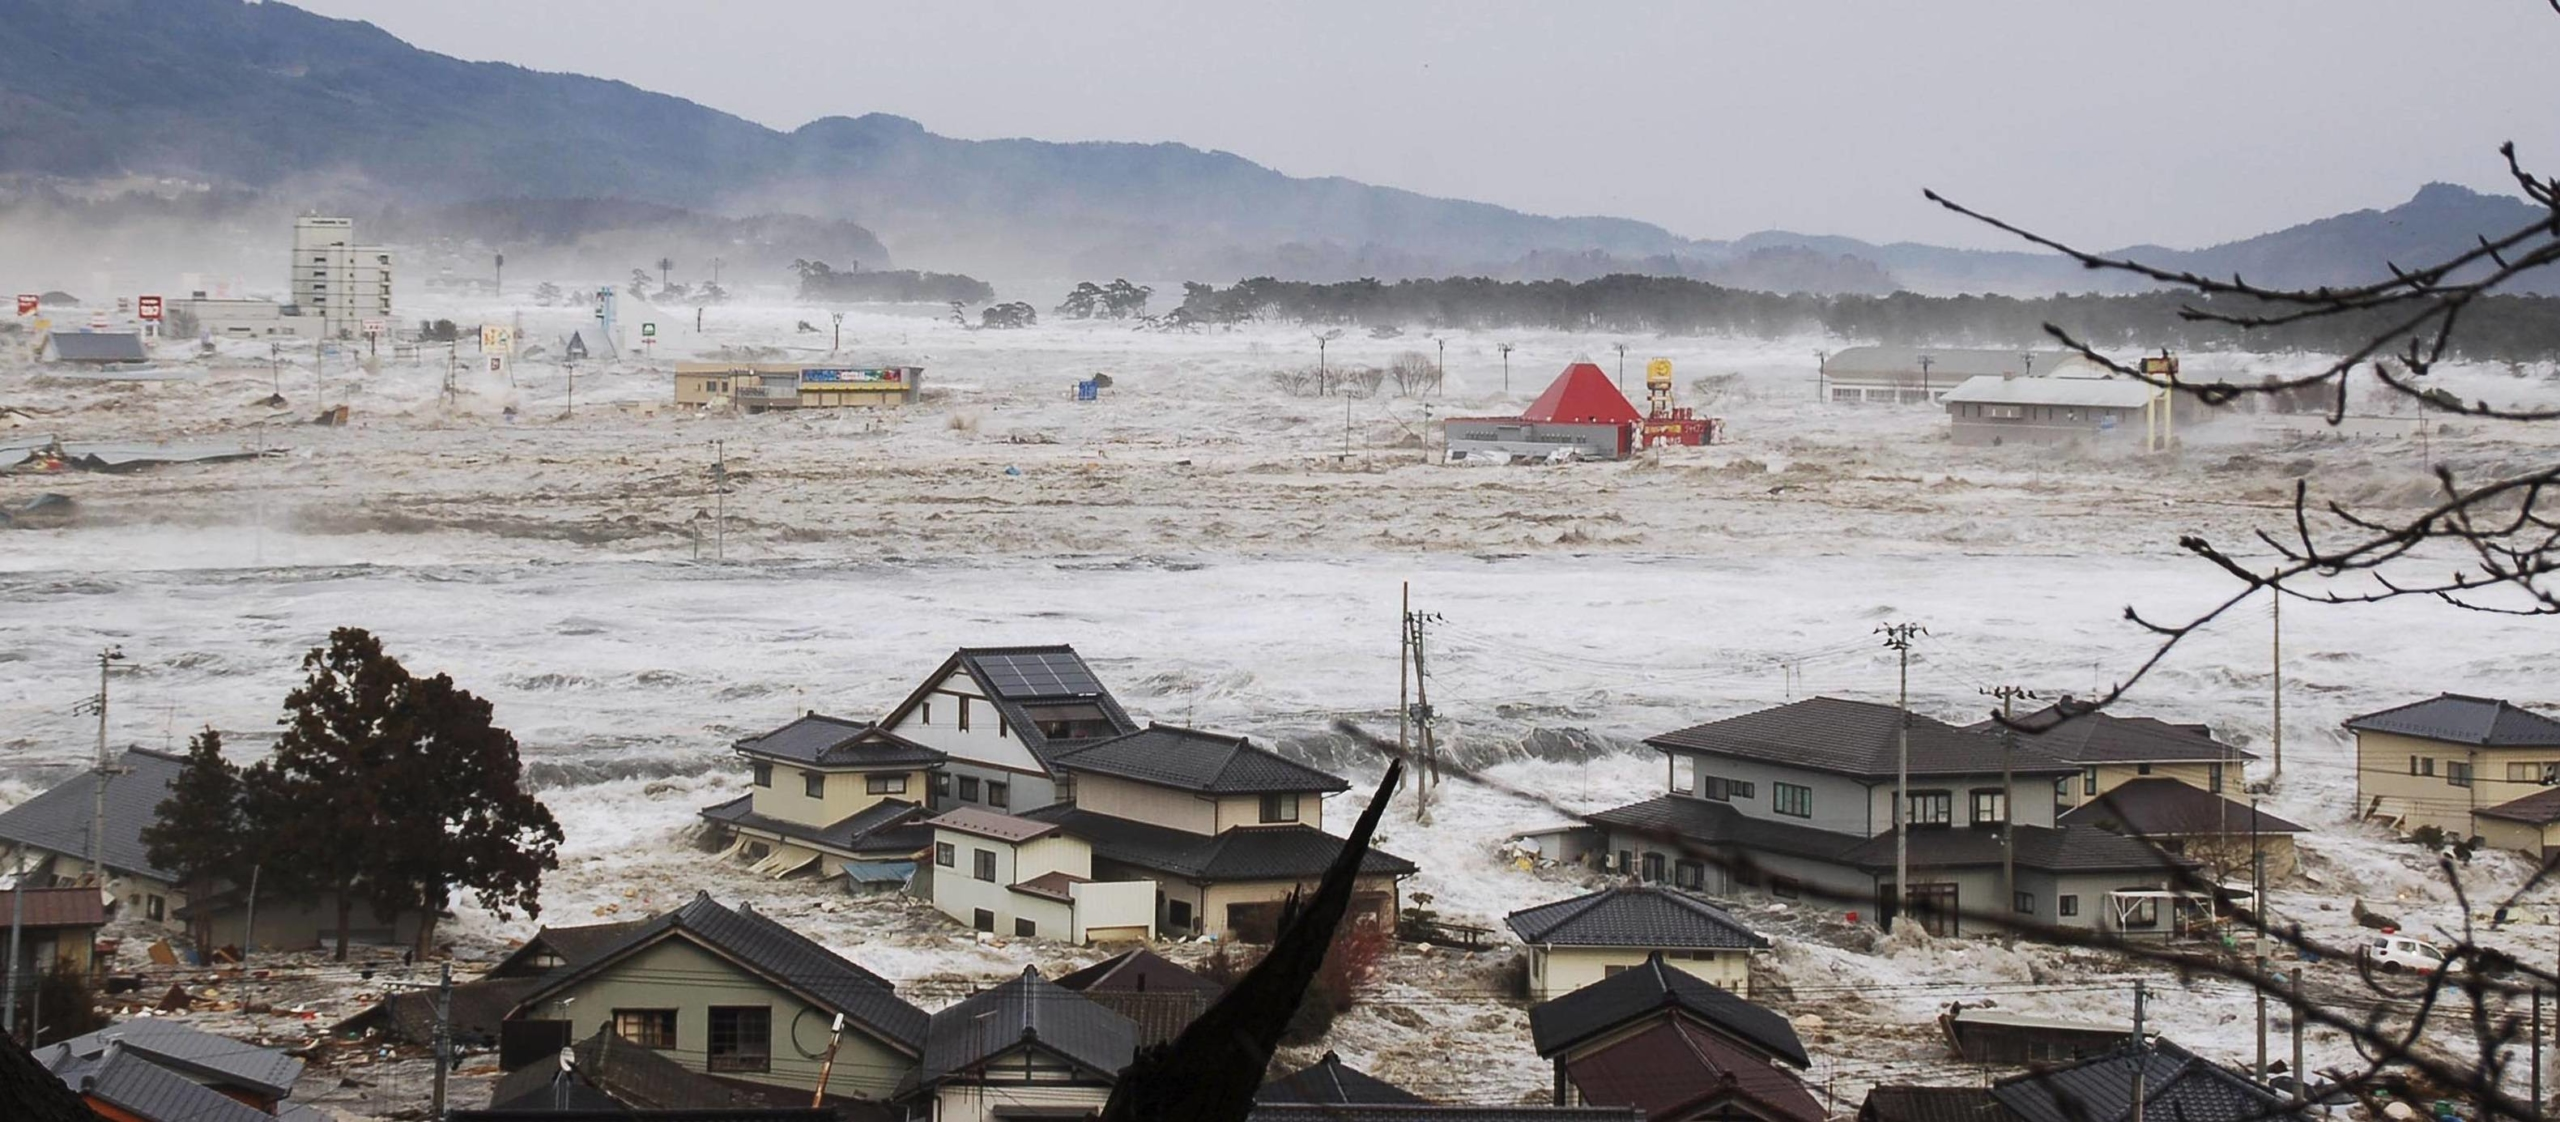 The city of Rikuzentakata, Iwate Prefecture, is flooded after an earthquake-triggered tsunami swept away the area on March 11, 2011, in this supplied photo. The meteorological agency's initial warning was criticized after the disaster for underestimating the size of the tsunami. | KYODO